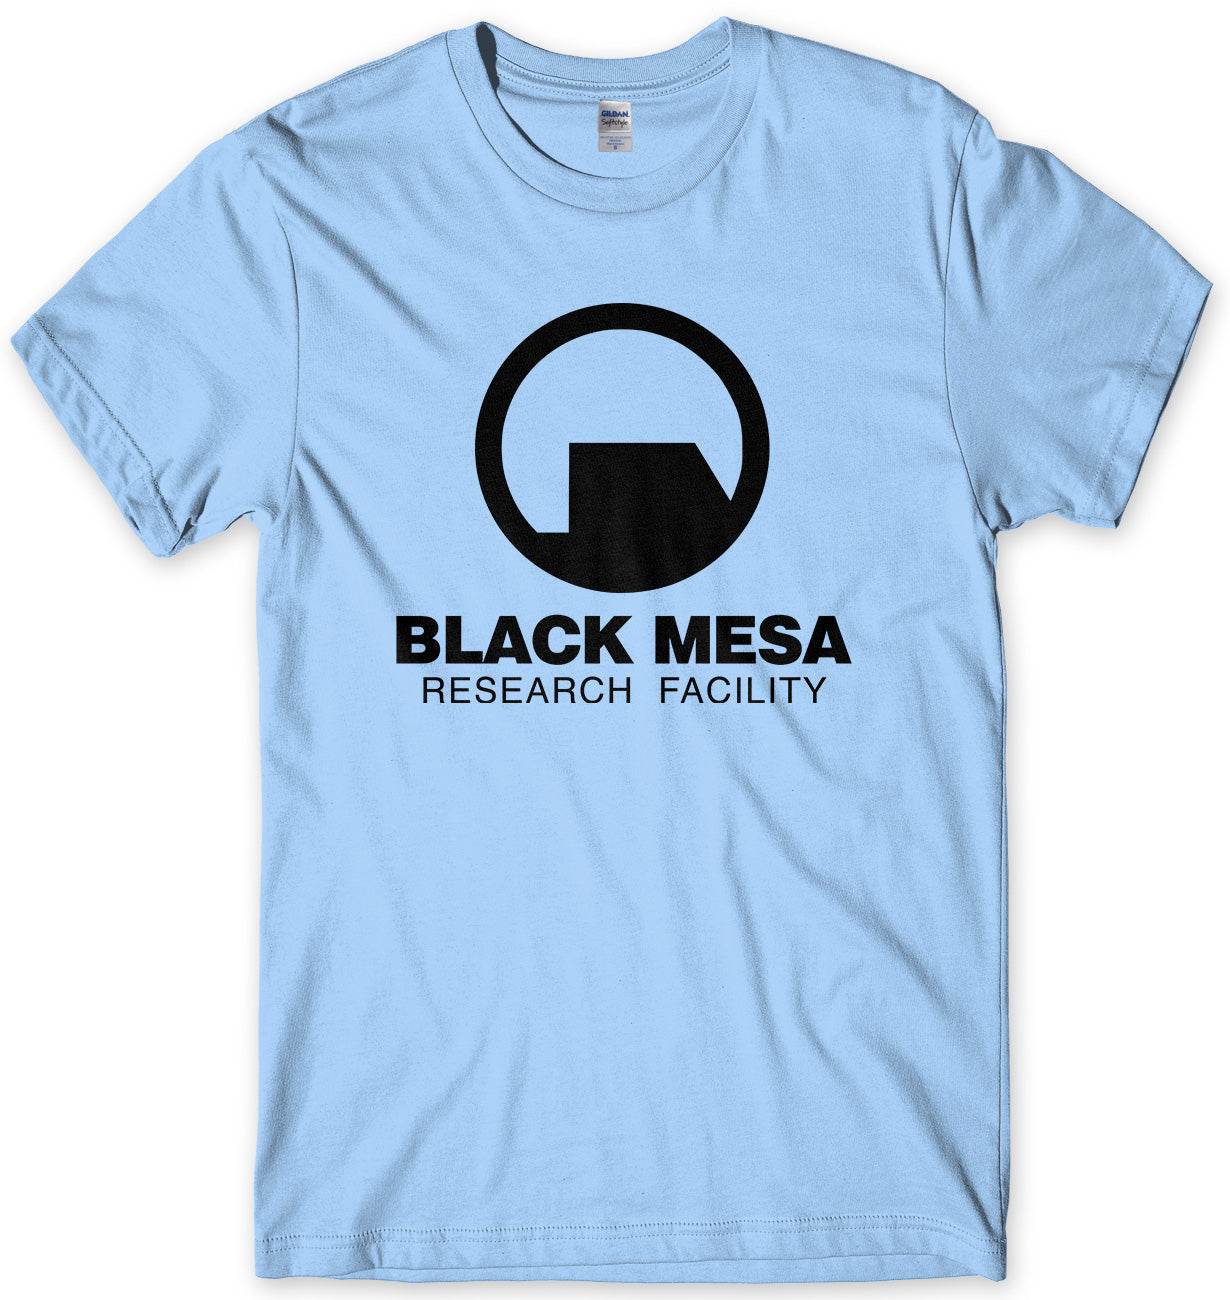 BLACK MESA RESEARCH FACILITY MENS UNISEX T-SHIRT